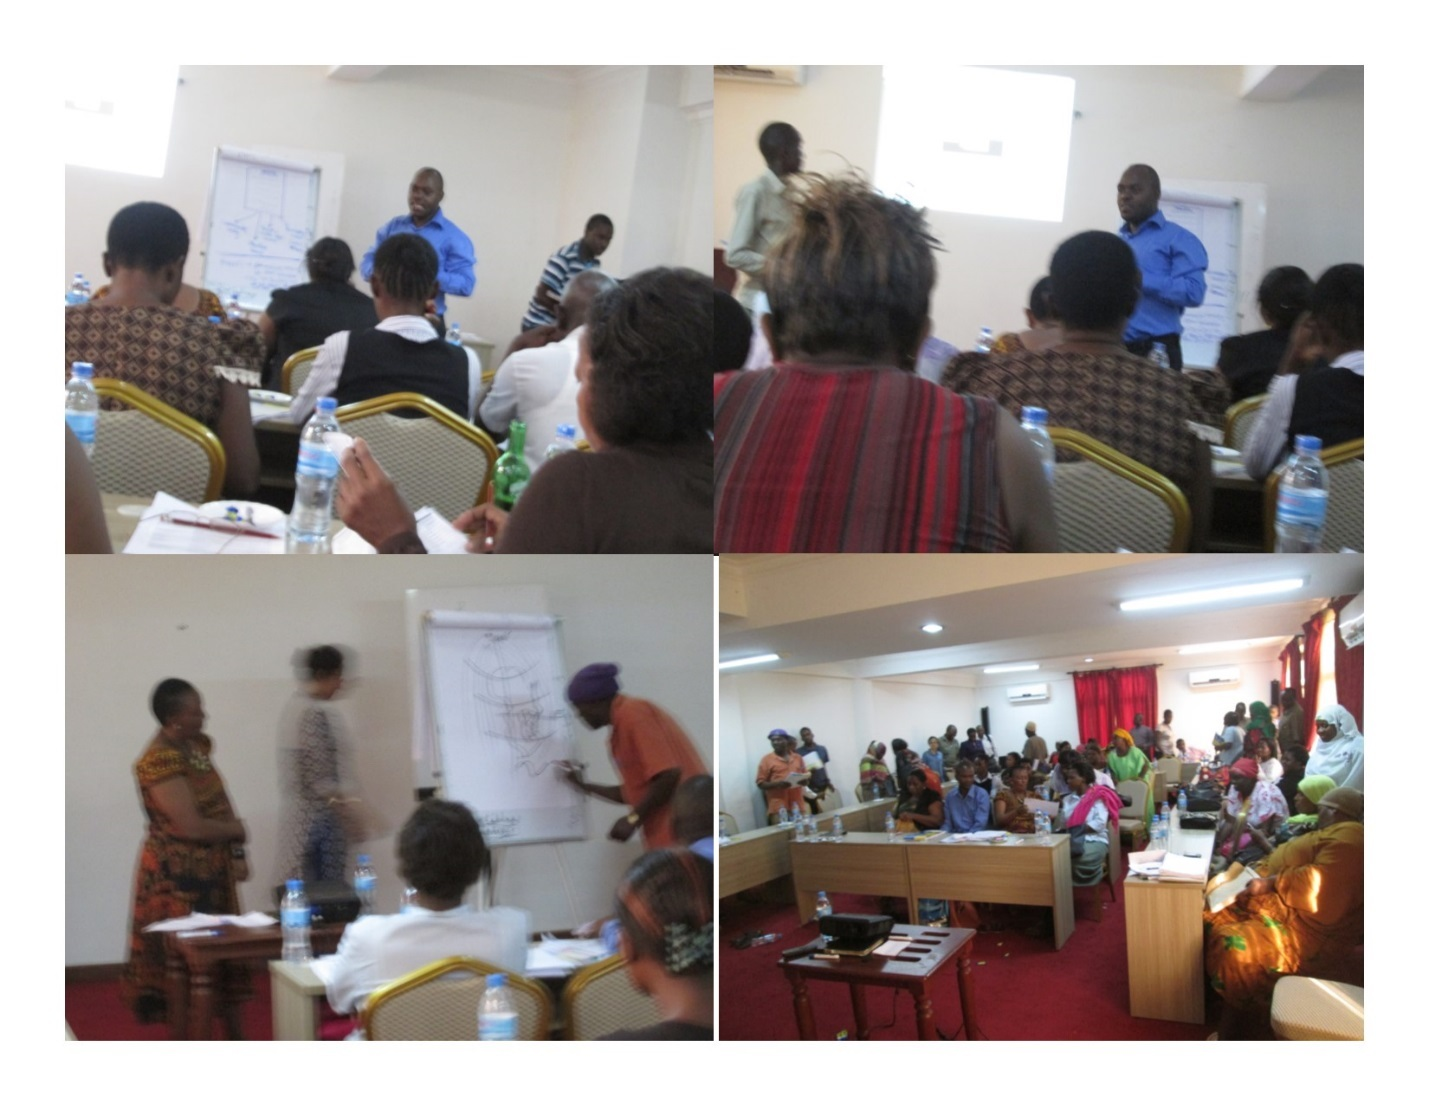 Figure 5: Training session held in Kenyatta hall